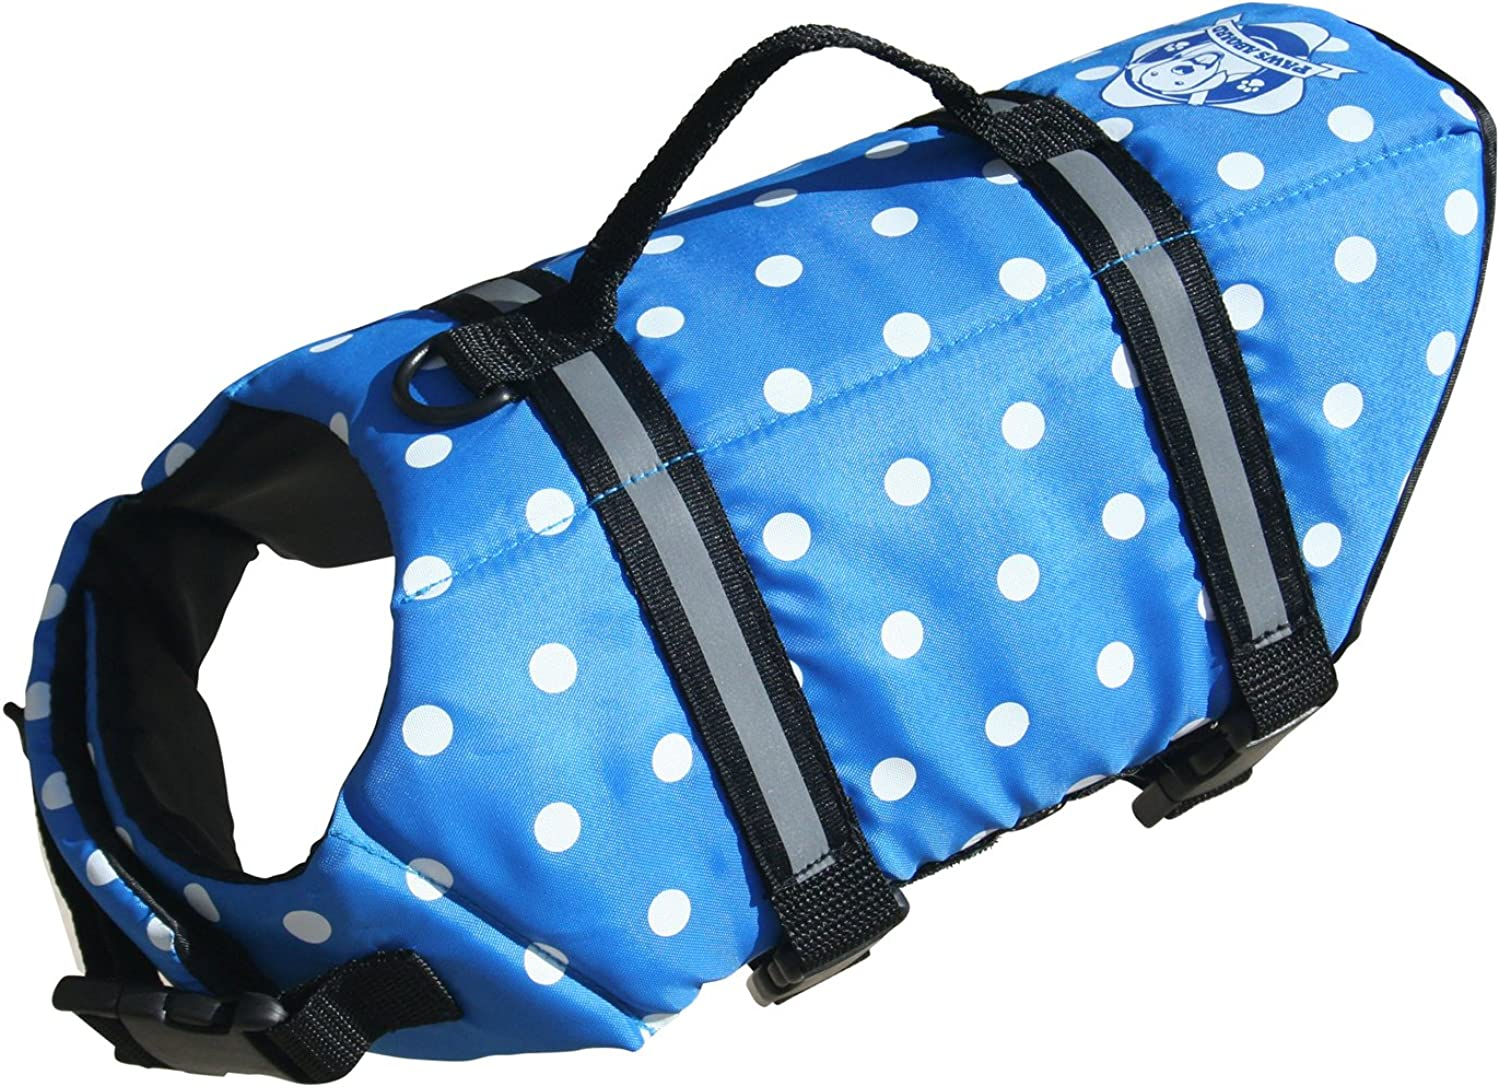 Designer Dog Life Jacket in bluee Polka Dot Size  XXSmall (Dogs up to 6 lbs) by Paws Aboard